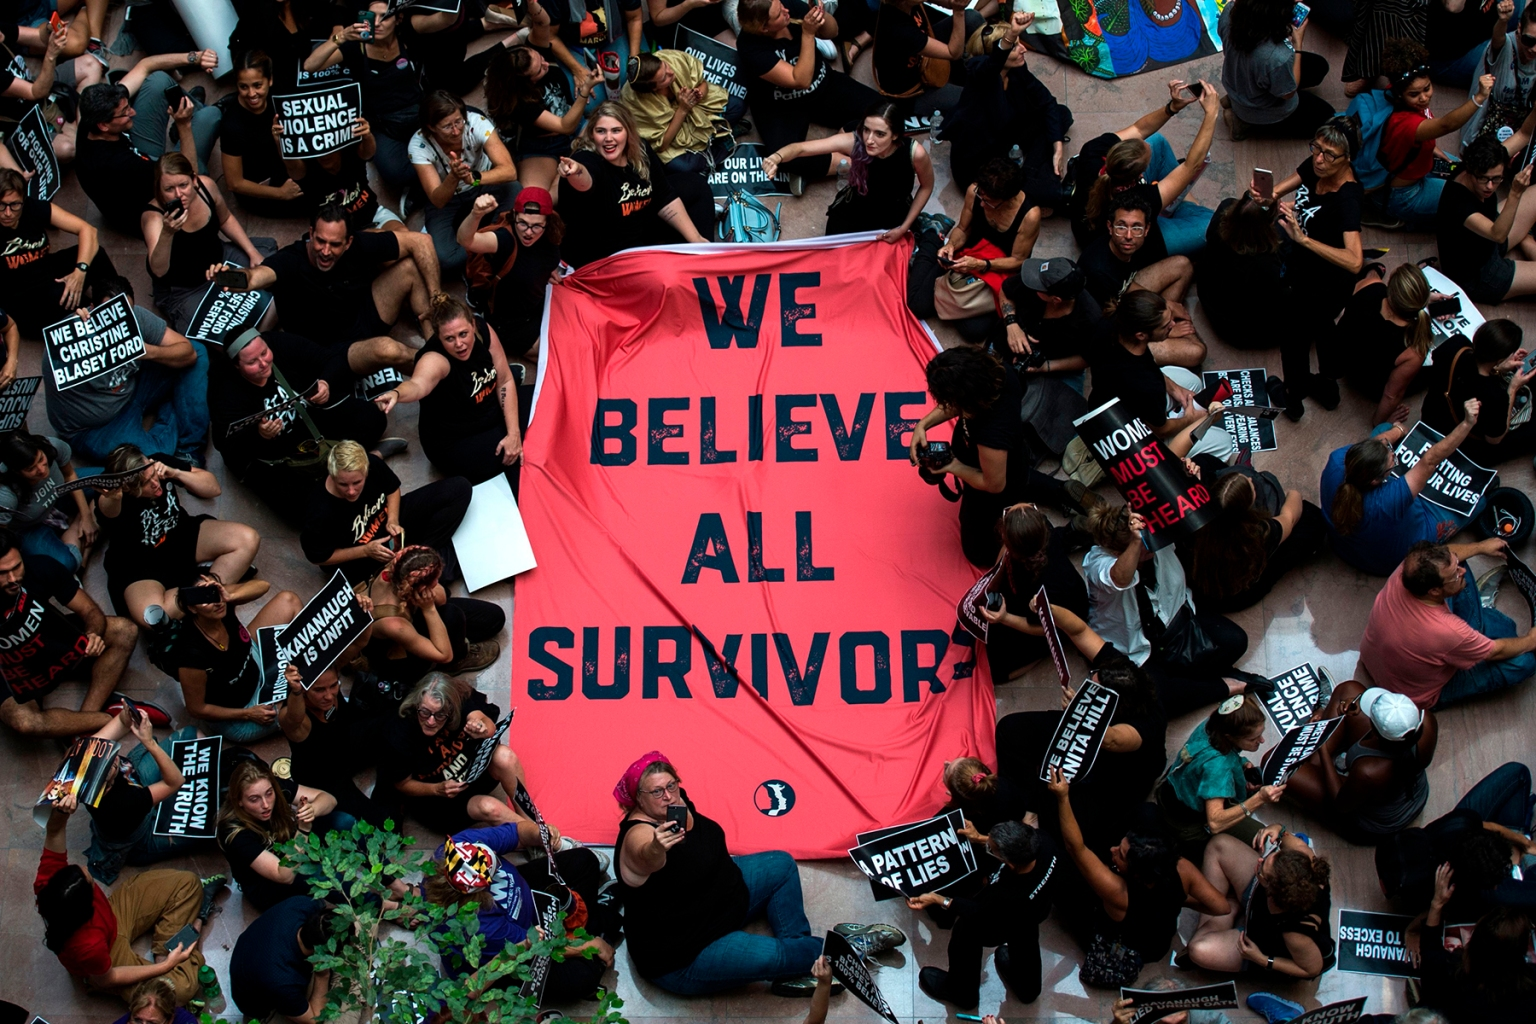 Protesters unfurl a sign as they occupy the Senate Hart building during a rally against Supreme Court nominee Brett Kavanaugh in Washington on Oct. 4. Andrew Caballero-Reynolds/AFP/Getty Images